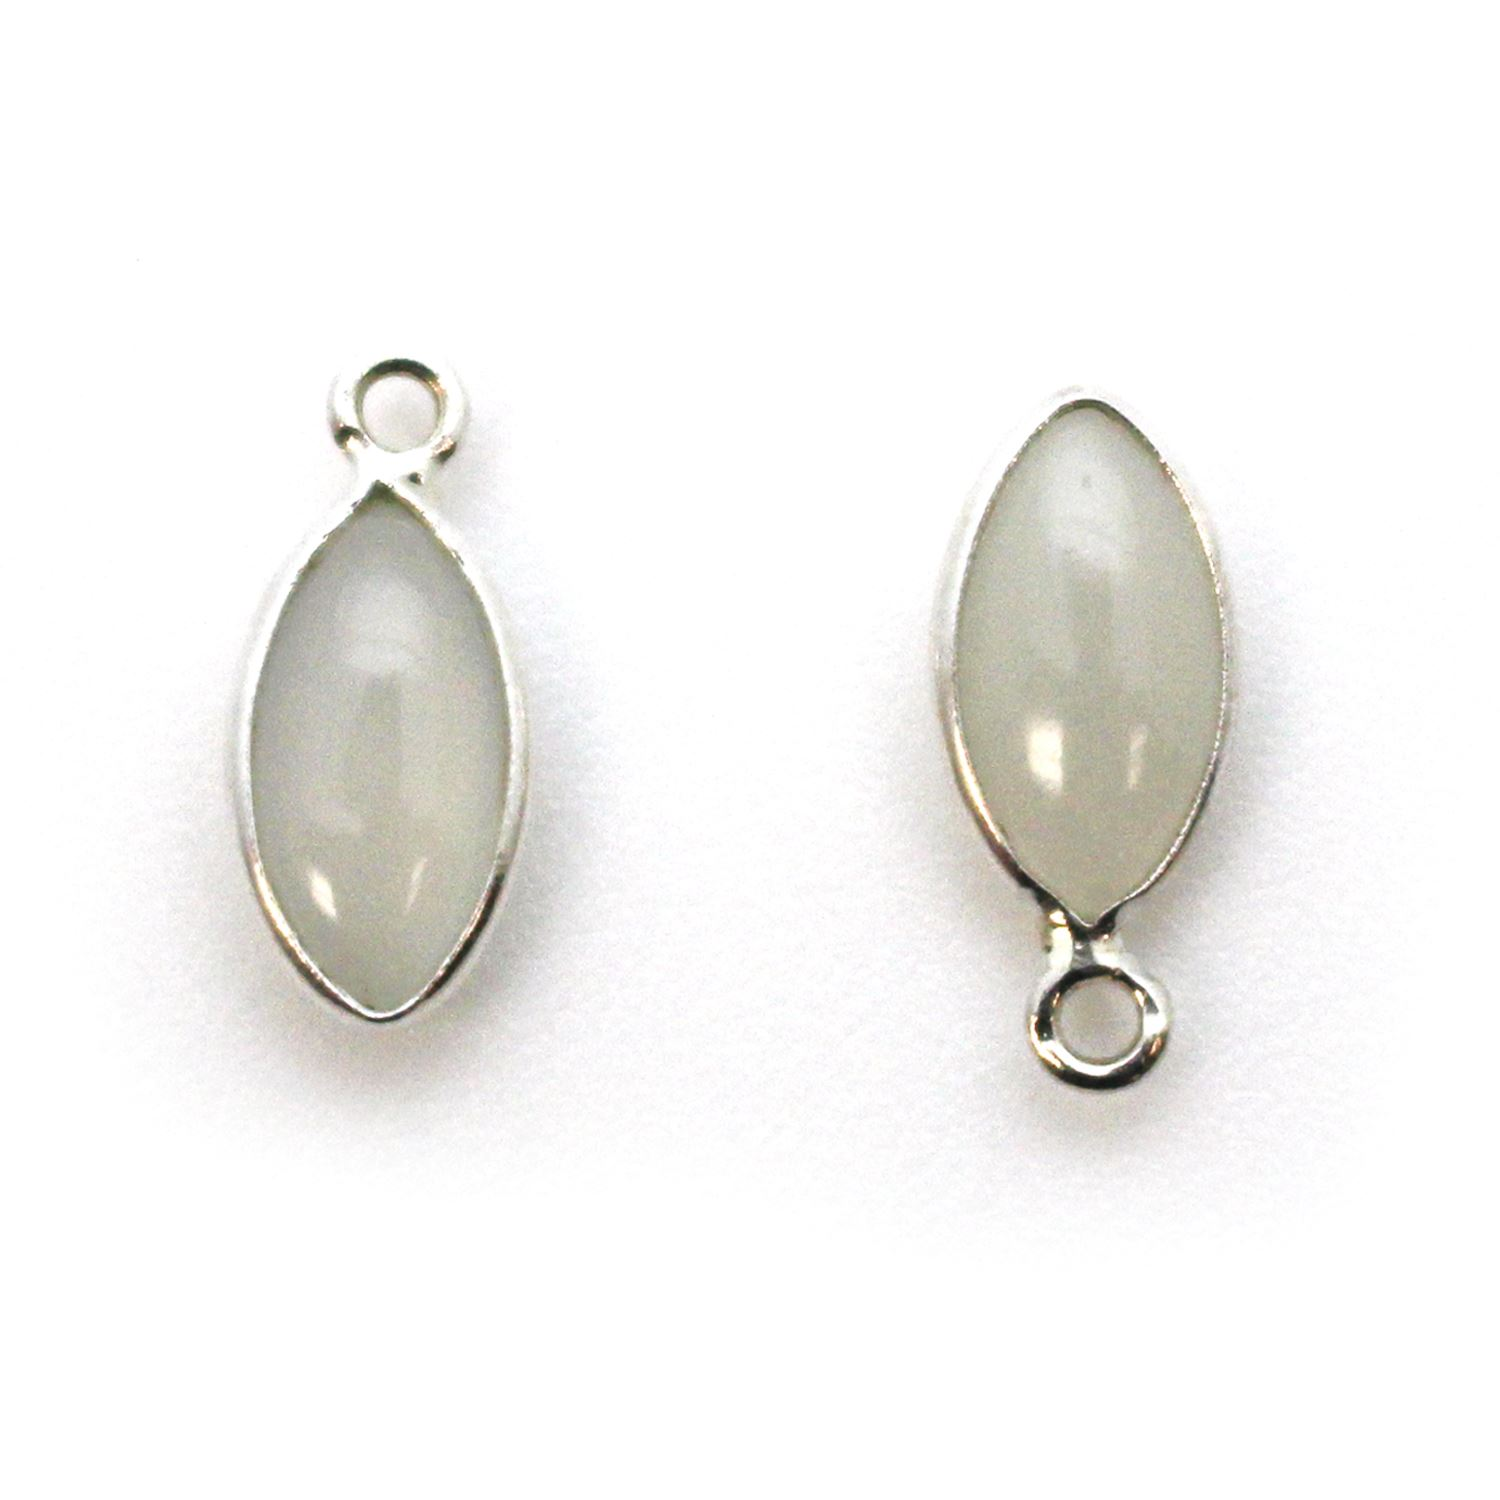 Bezel Charm Pendant - Sterling Silver Charm - Natural Moonstone - Tiny Marquise Shape -6x13mm